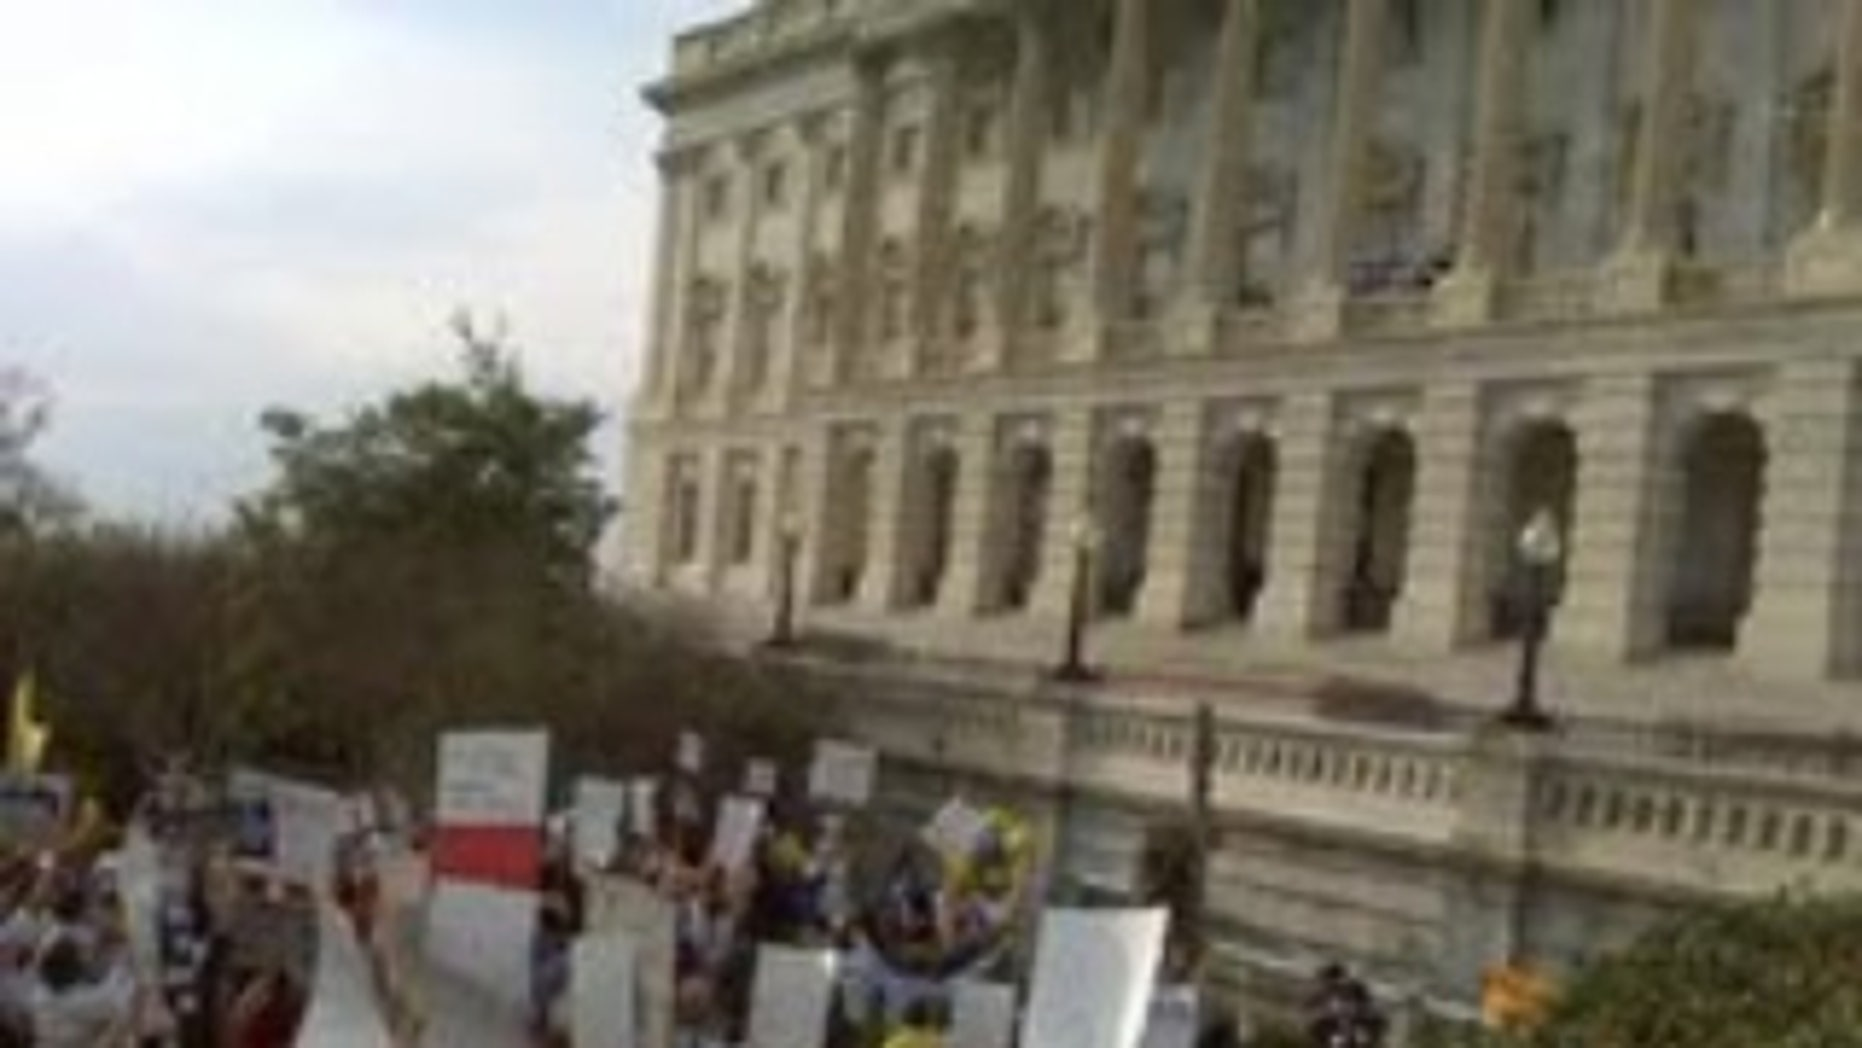 Pro-Health Care Reform and Anti-Health Care Reform Protestors Rally in front of the Capitol